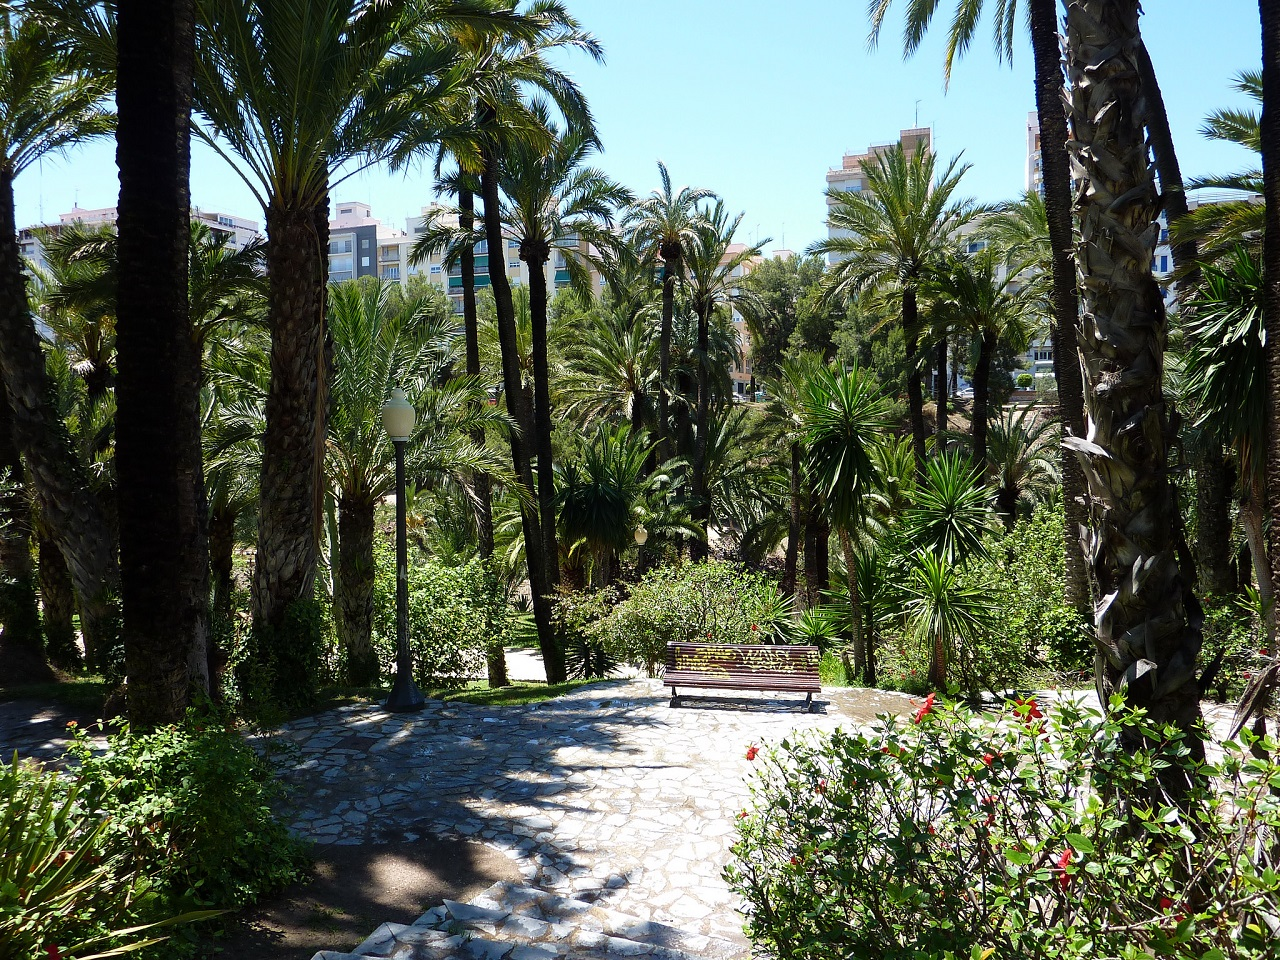 Palm trees are everywhere in Elche, Cities in Spain